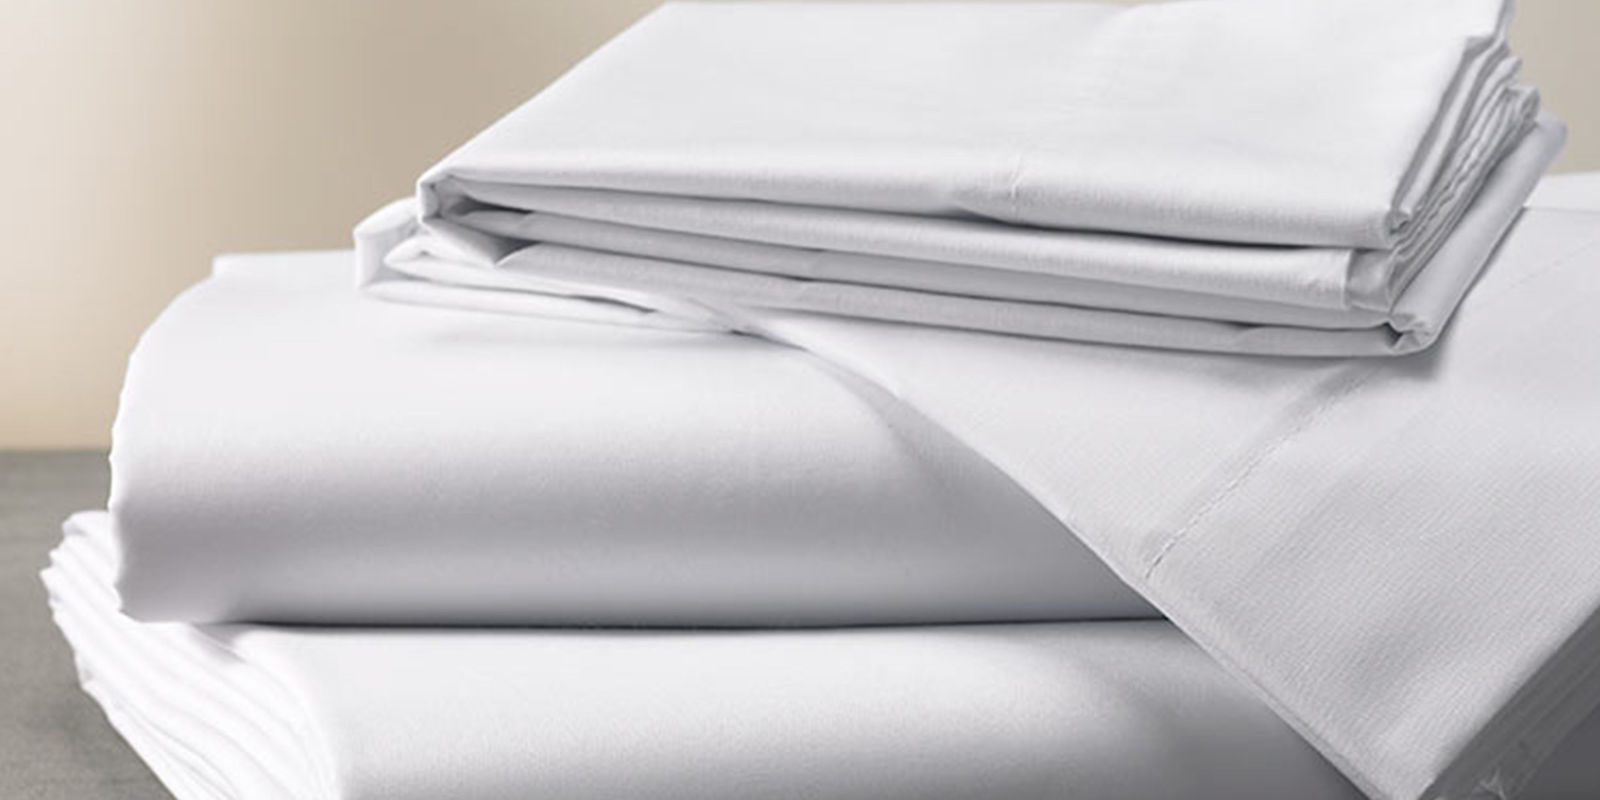 jw marriott hotel sheet set review price and features